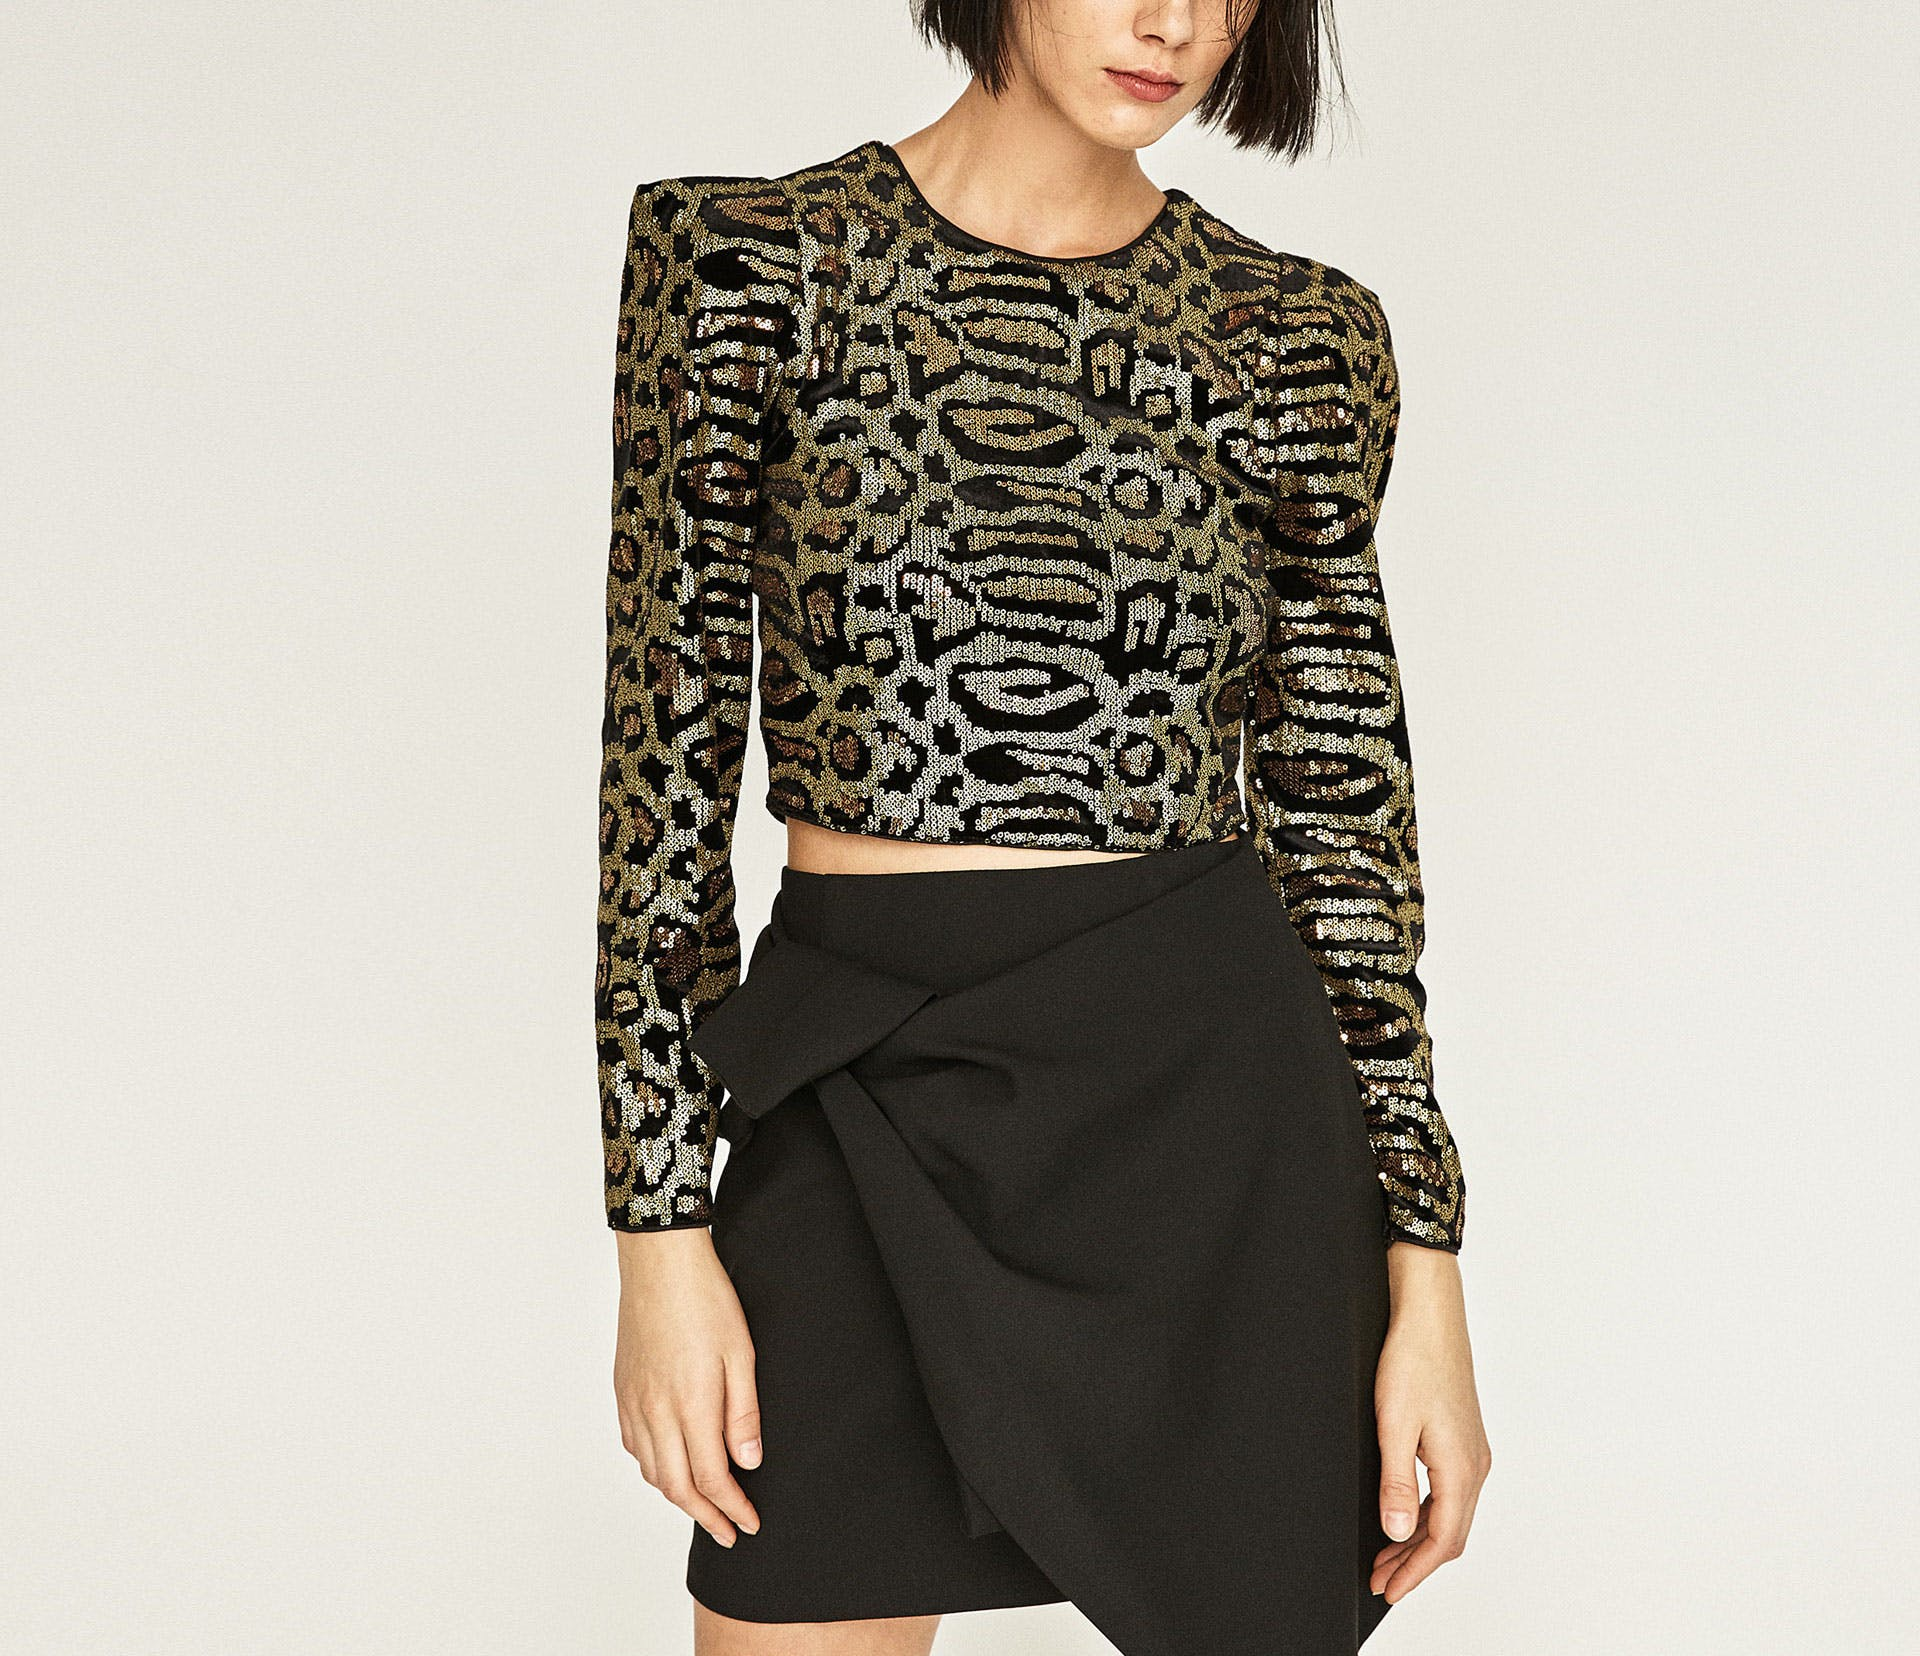 dallas what to buy at zara 6 sequin top